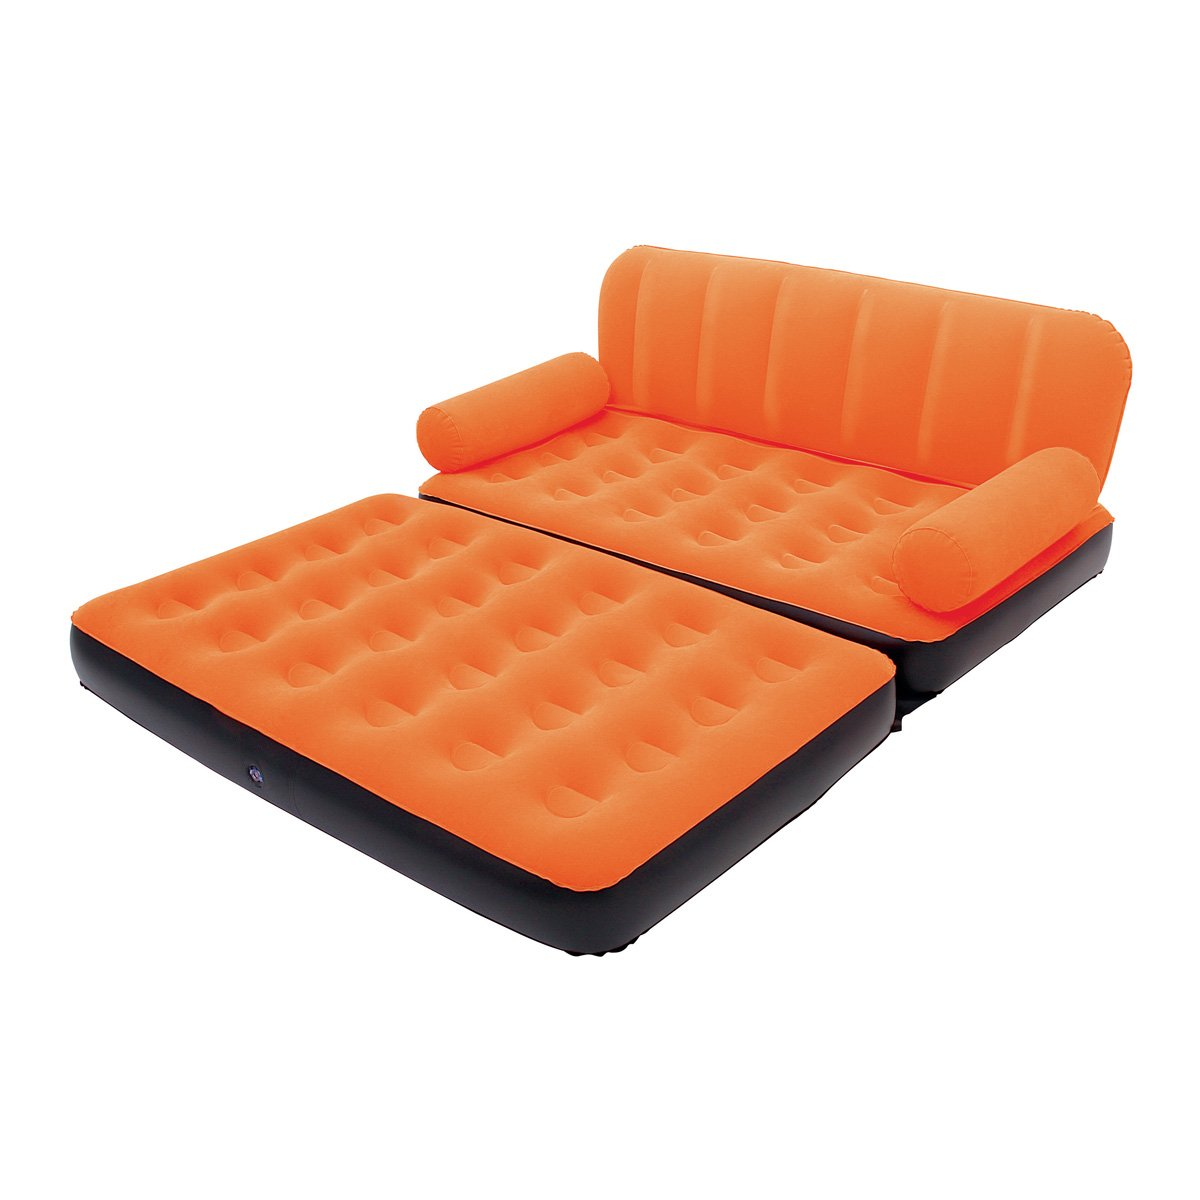 Bestway Multi-Max Inflatable Couch with Air Pump, Orange